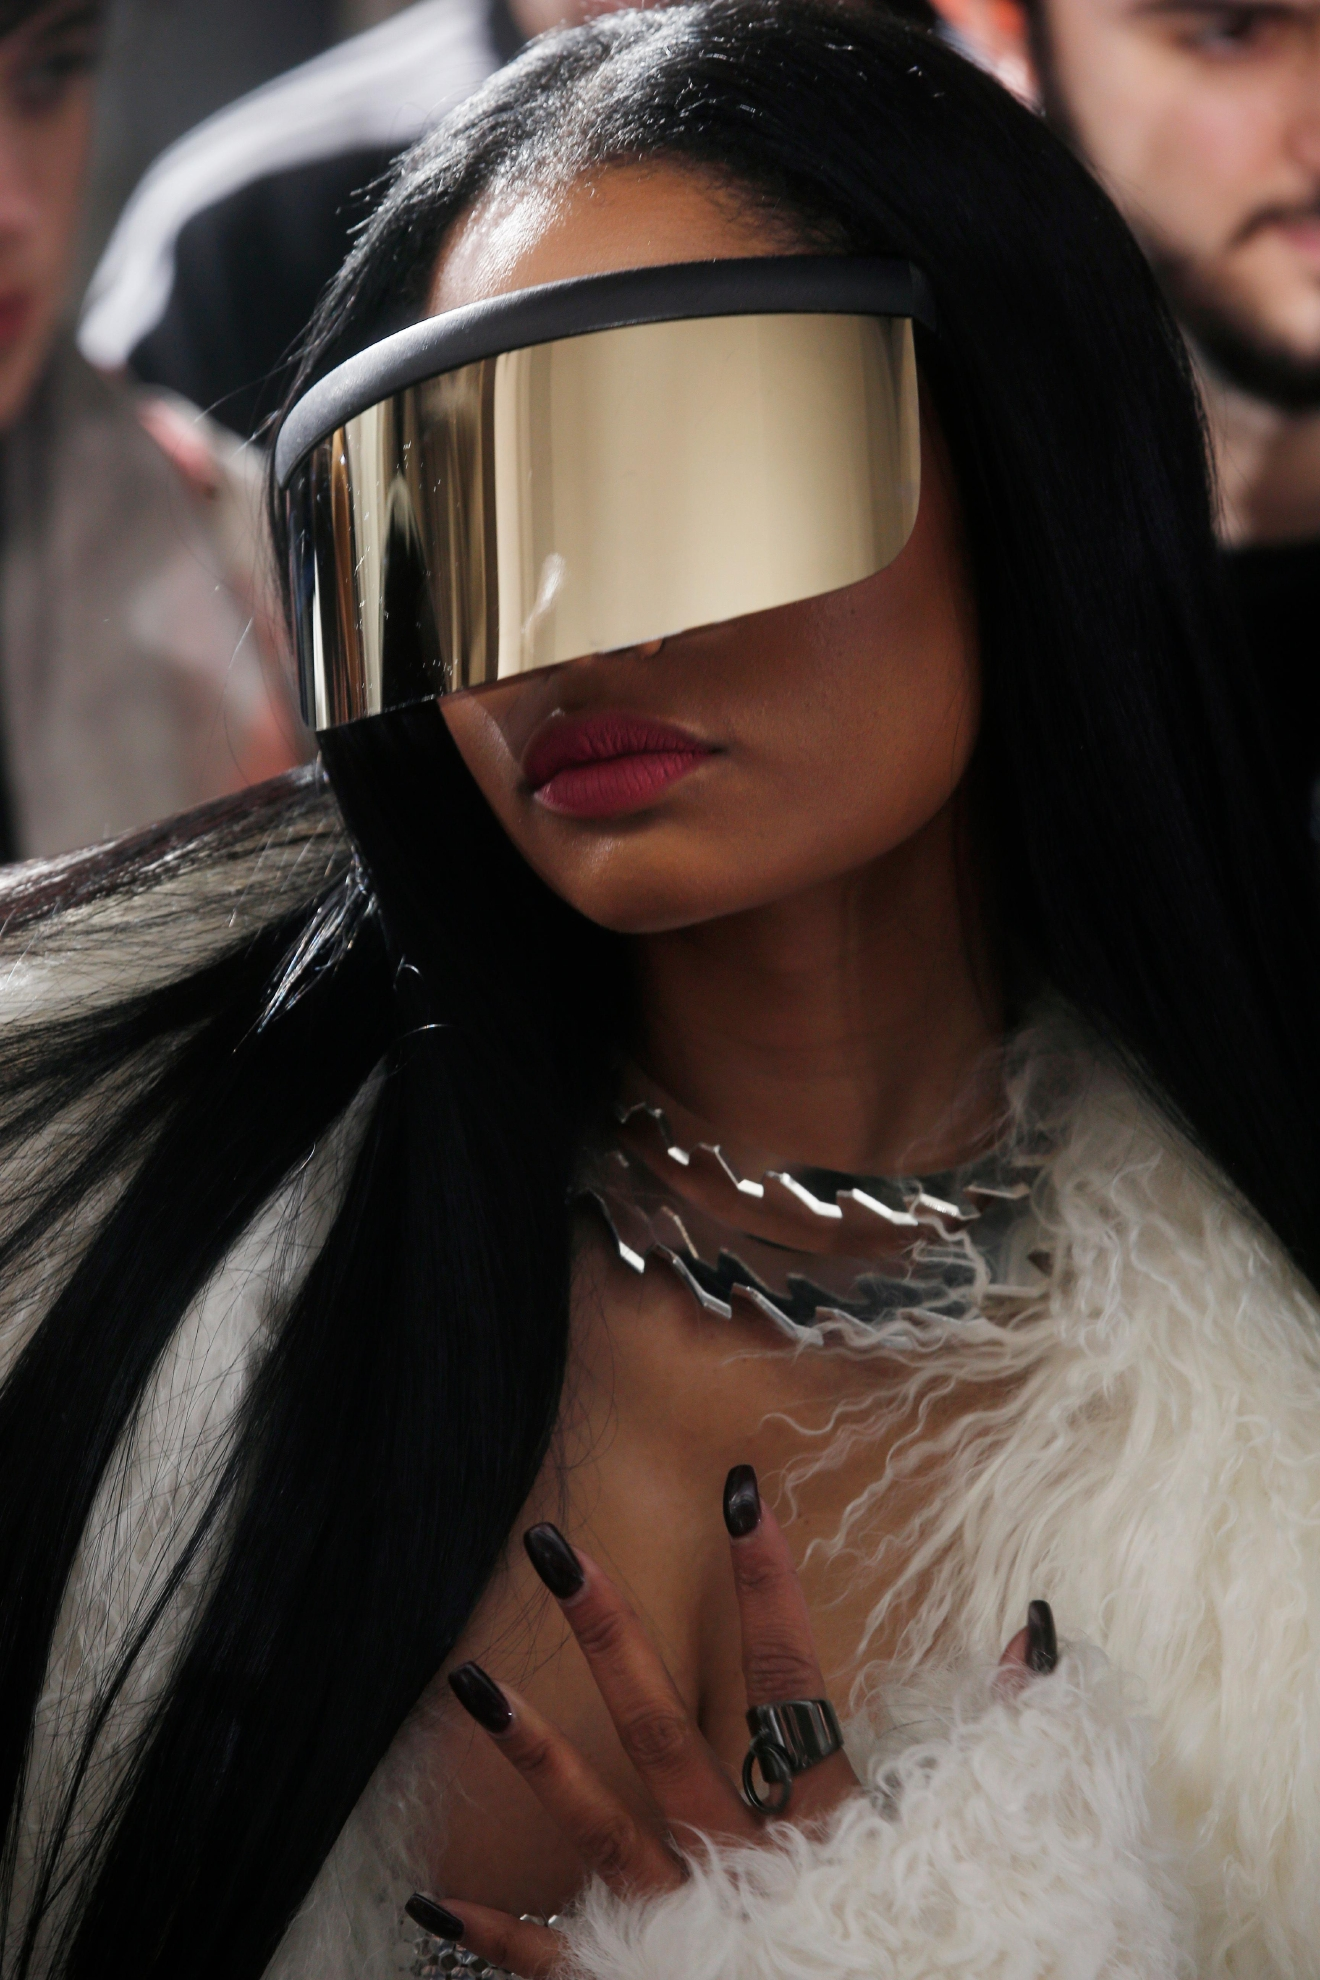 Singer Nicki Minaj attends Rick Owens' Fall-Winter 2017-2018 ready to wear fashion collection presented in Paris, Thursday, March 2, 2017. (AP Photo/Thibault Camus)